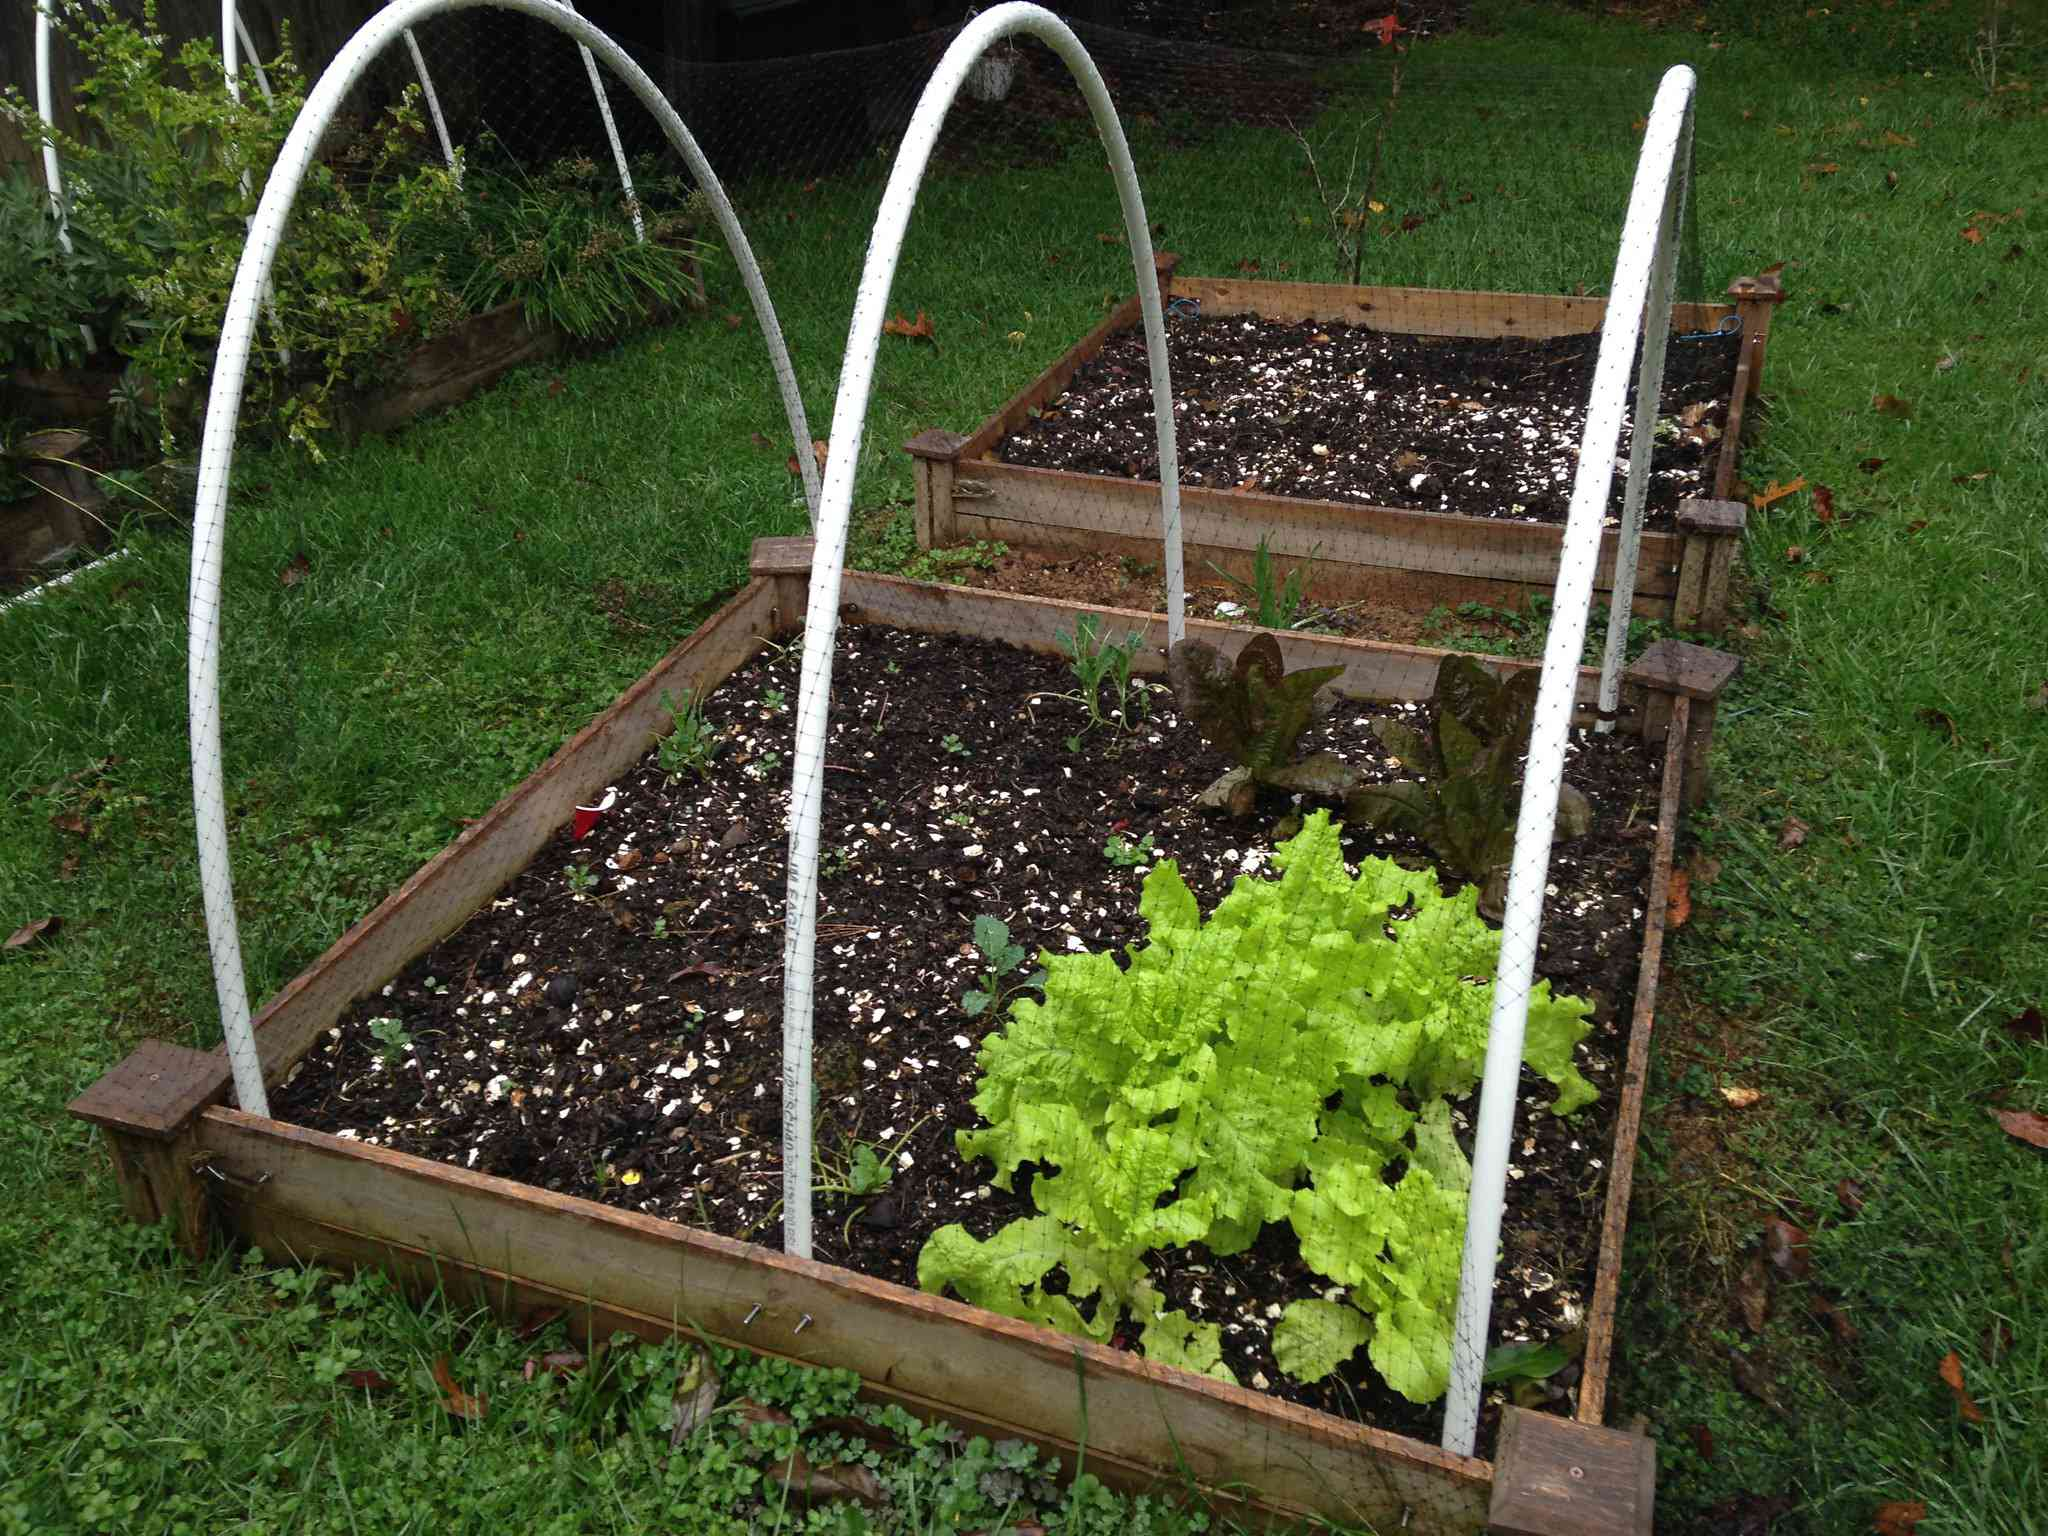 A square gardening box with three hoops for a low tunnel garden.